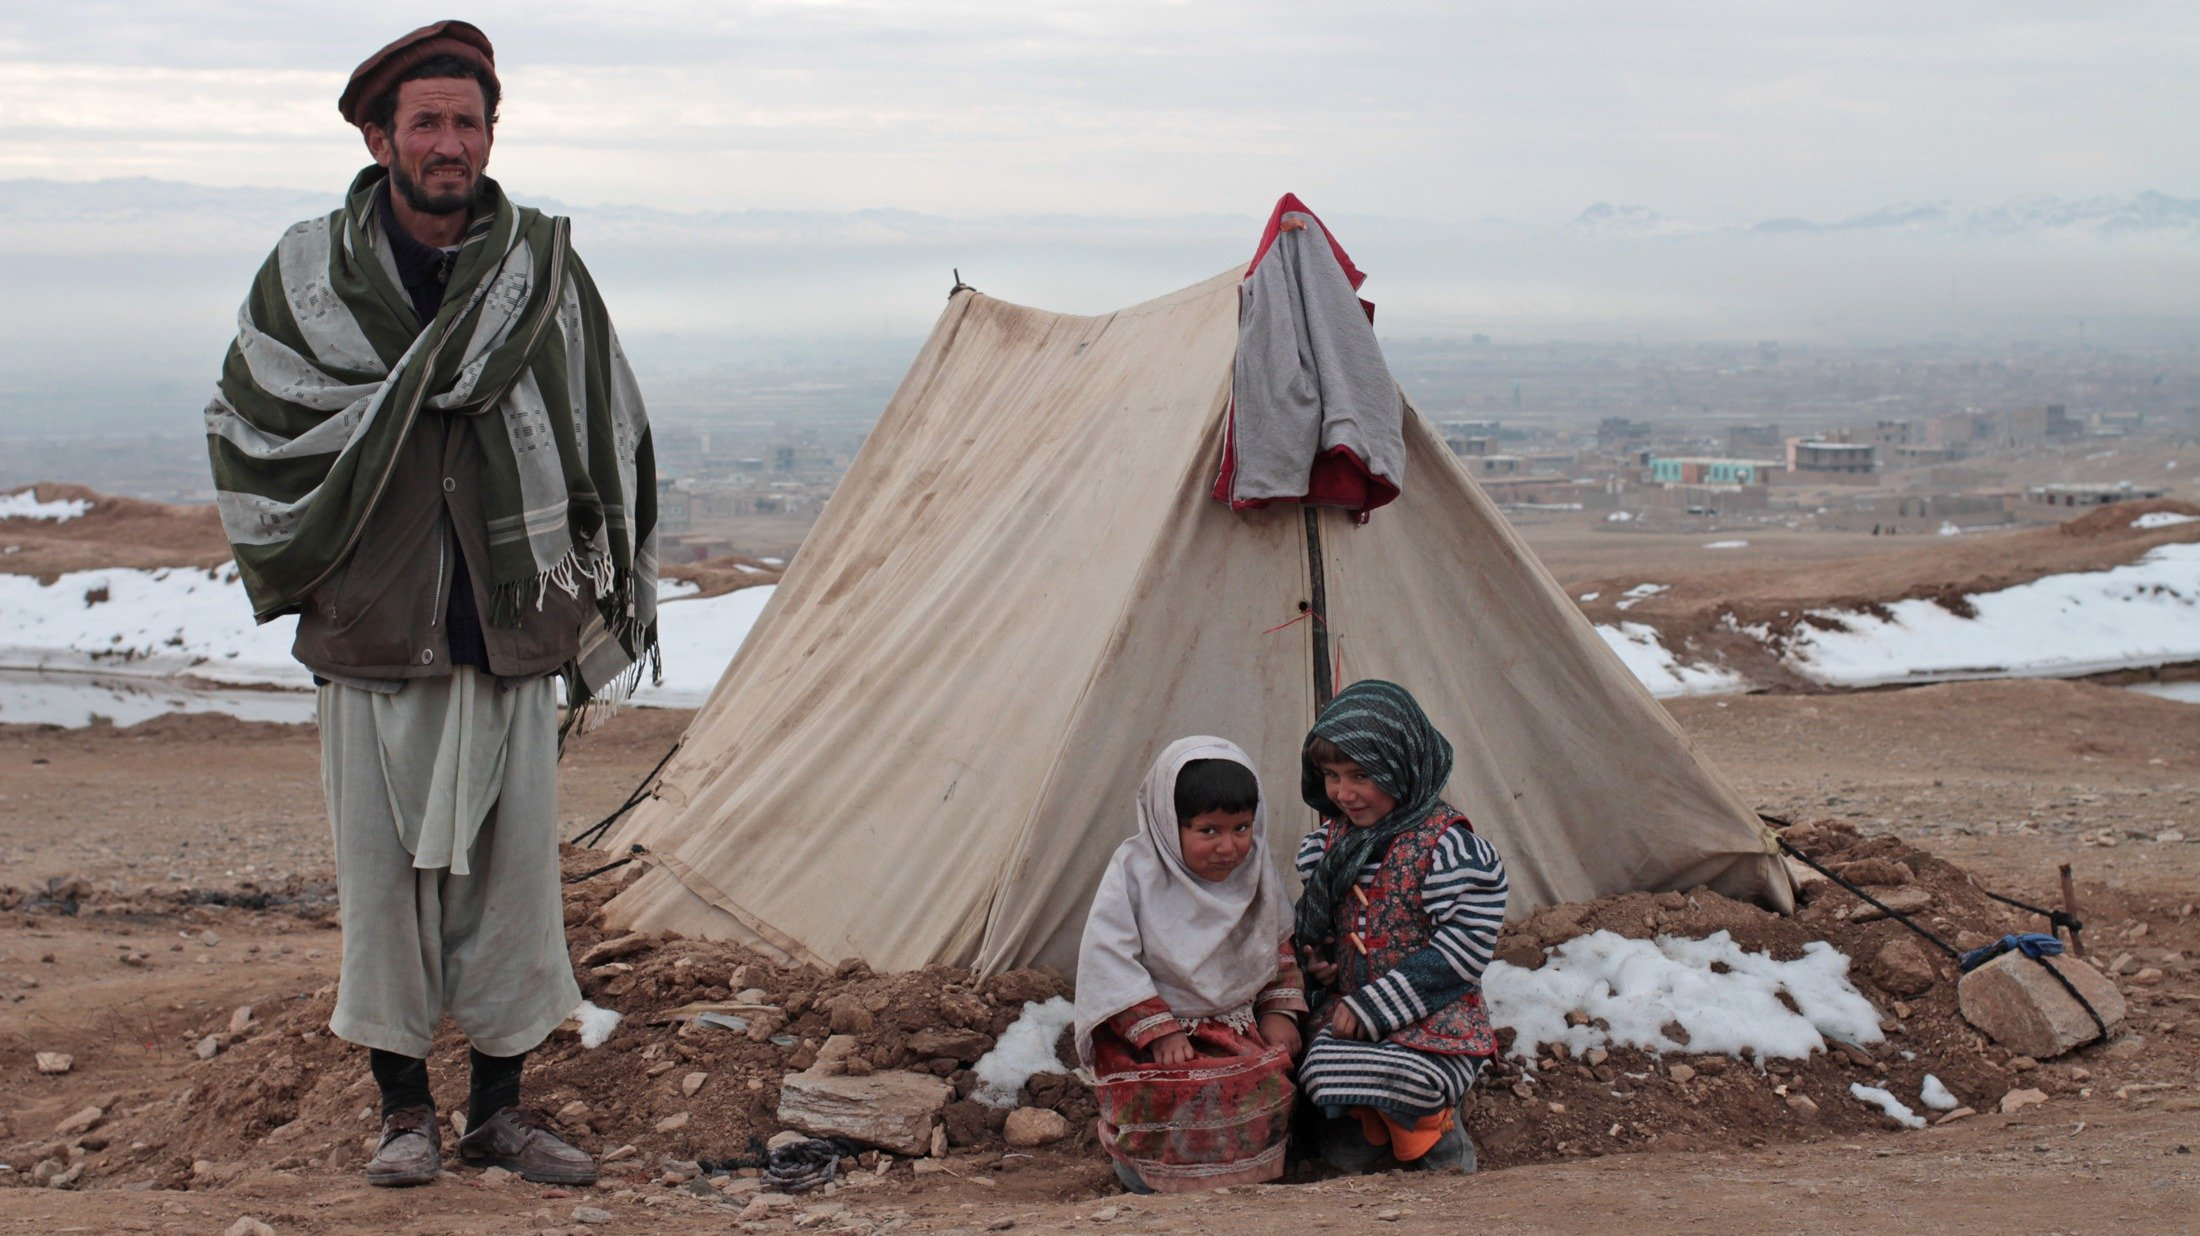 Displaced families from Ghor province in Afghanistan shelter outside Herat in freezing temperatures